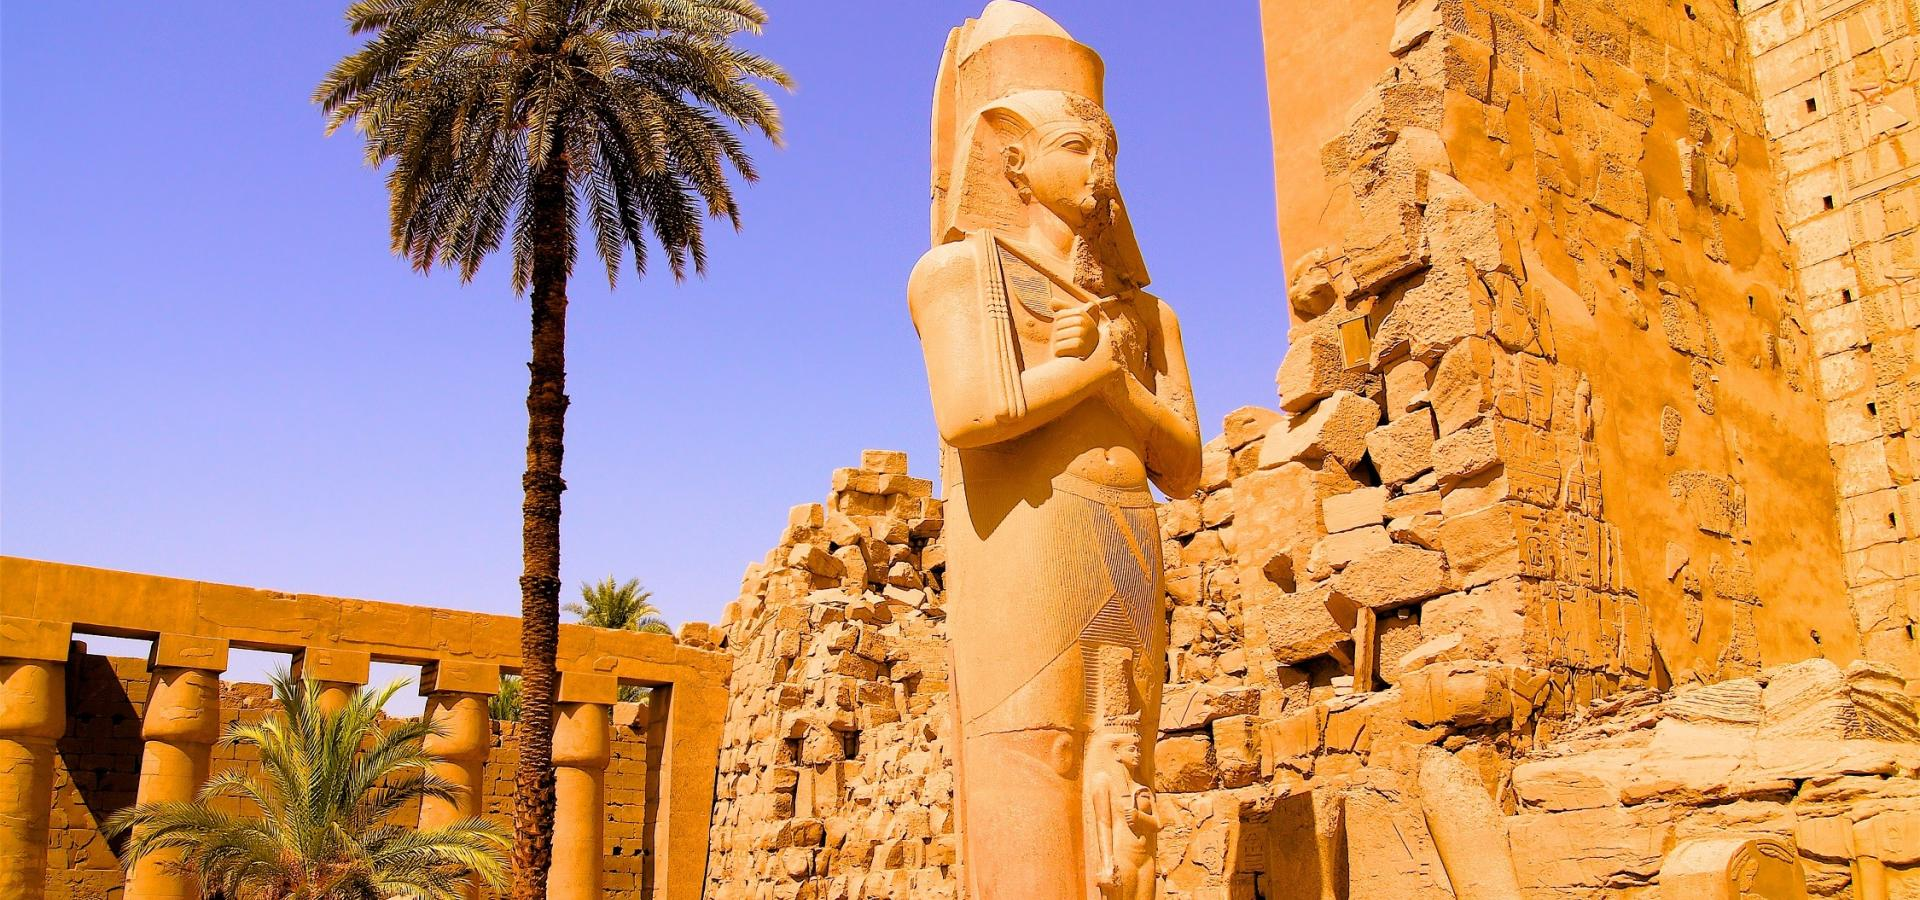 Cairo, Luxor & Hurghada 7 Days / 6 Nights Tour Package